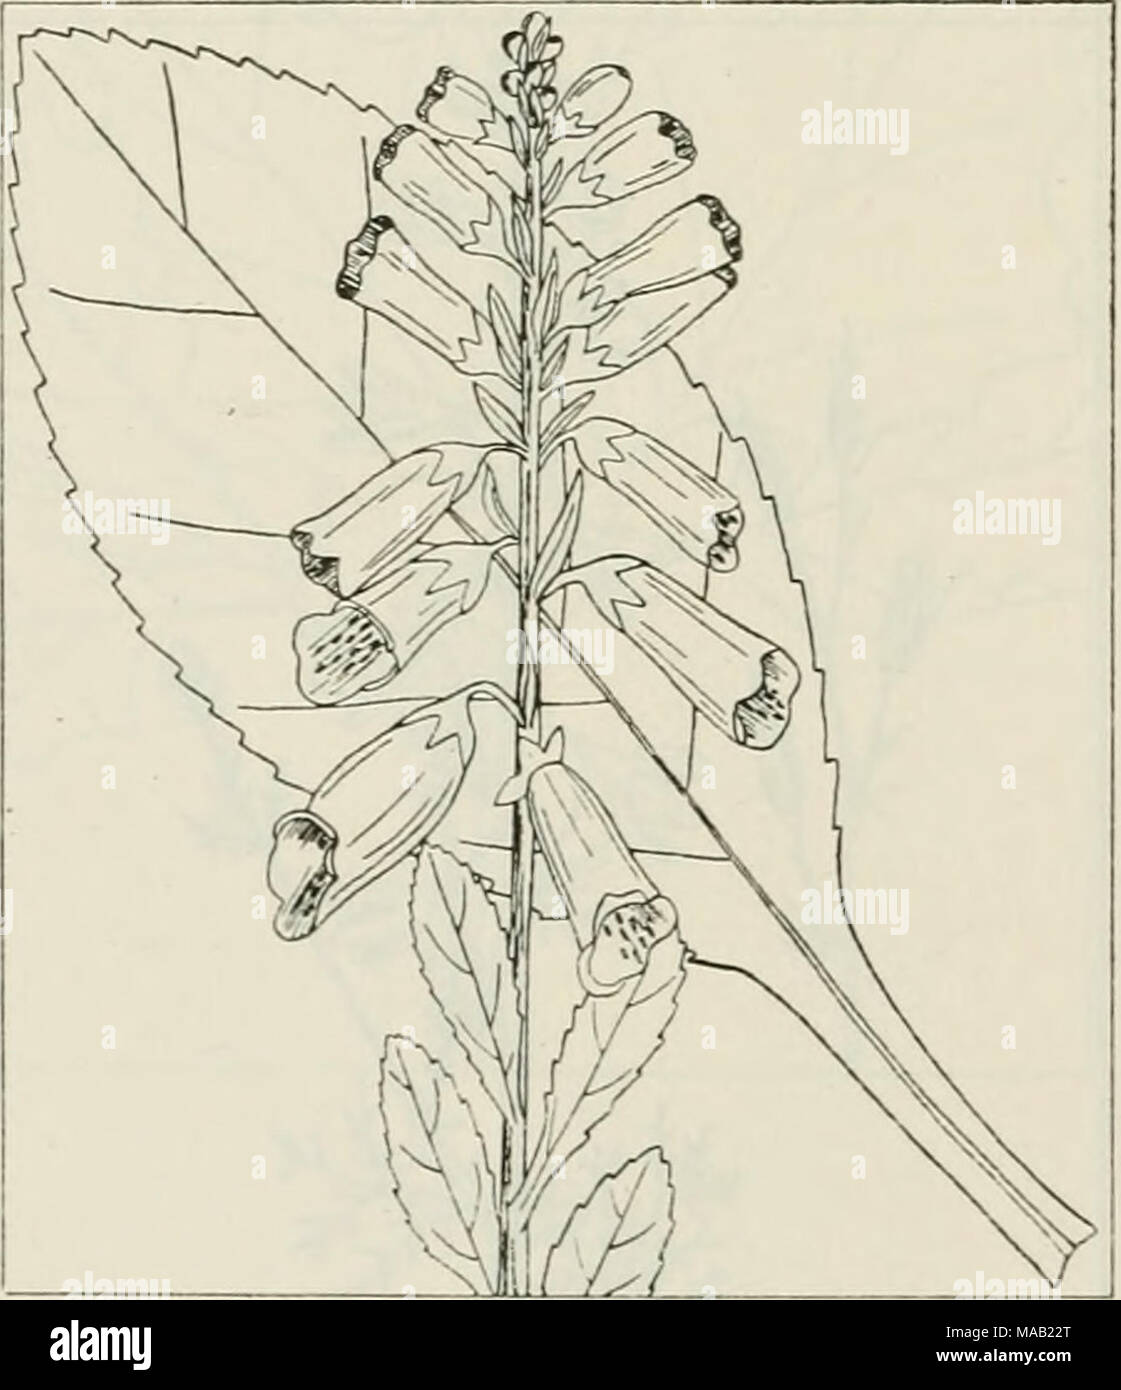 . The drug plants of Illinois . DIGITALIS PURPUREA L. Digi- talis, foxglove. Scrophulariaceae. U. S. P. XL pp. 136,131, 397, 485. Leaves collected from the second year's growth. Grown in gardens throughout the state; not known to have become estab- lished as an escape. Contains several glucosides, among which digitoxin, digitalin, and digitonin are the most active. Of great use as a stimulant in treating heart disorders. i - Stock Image